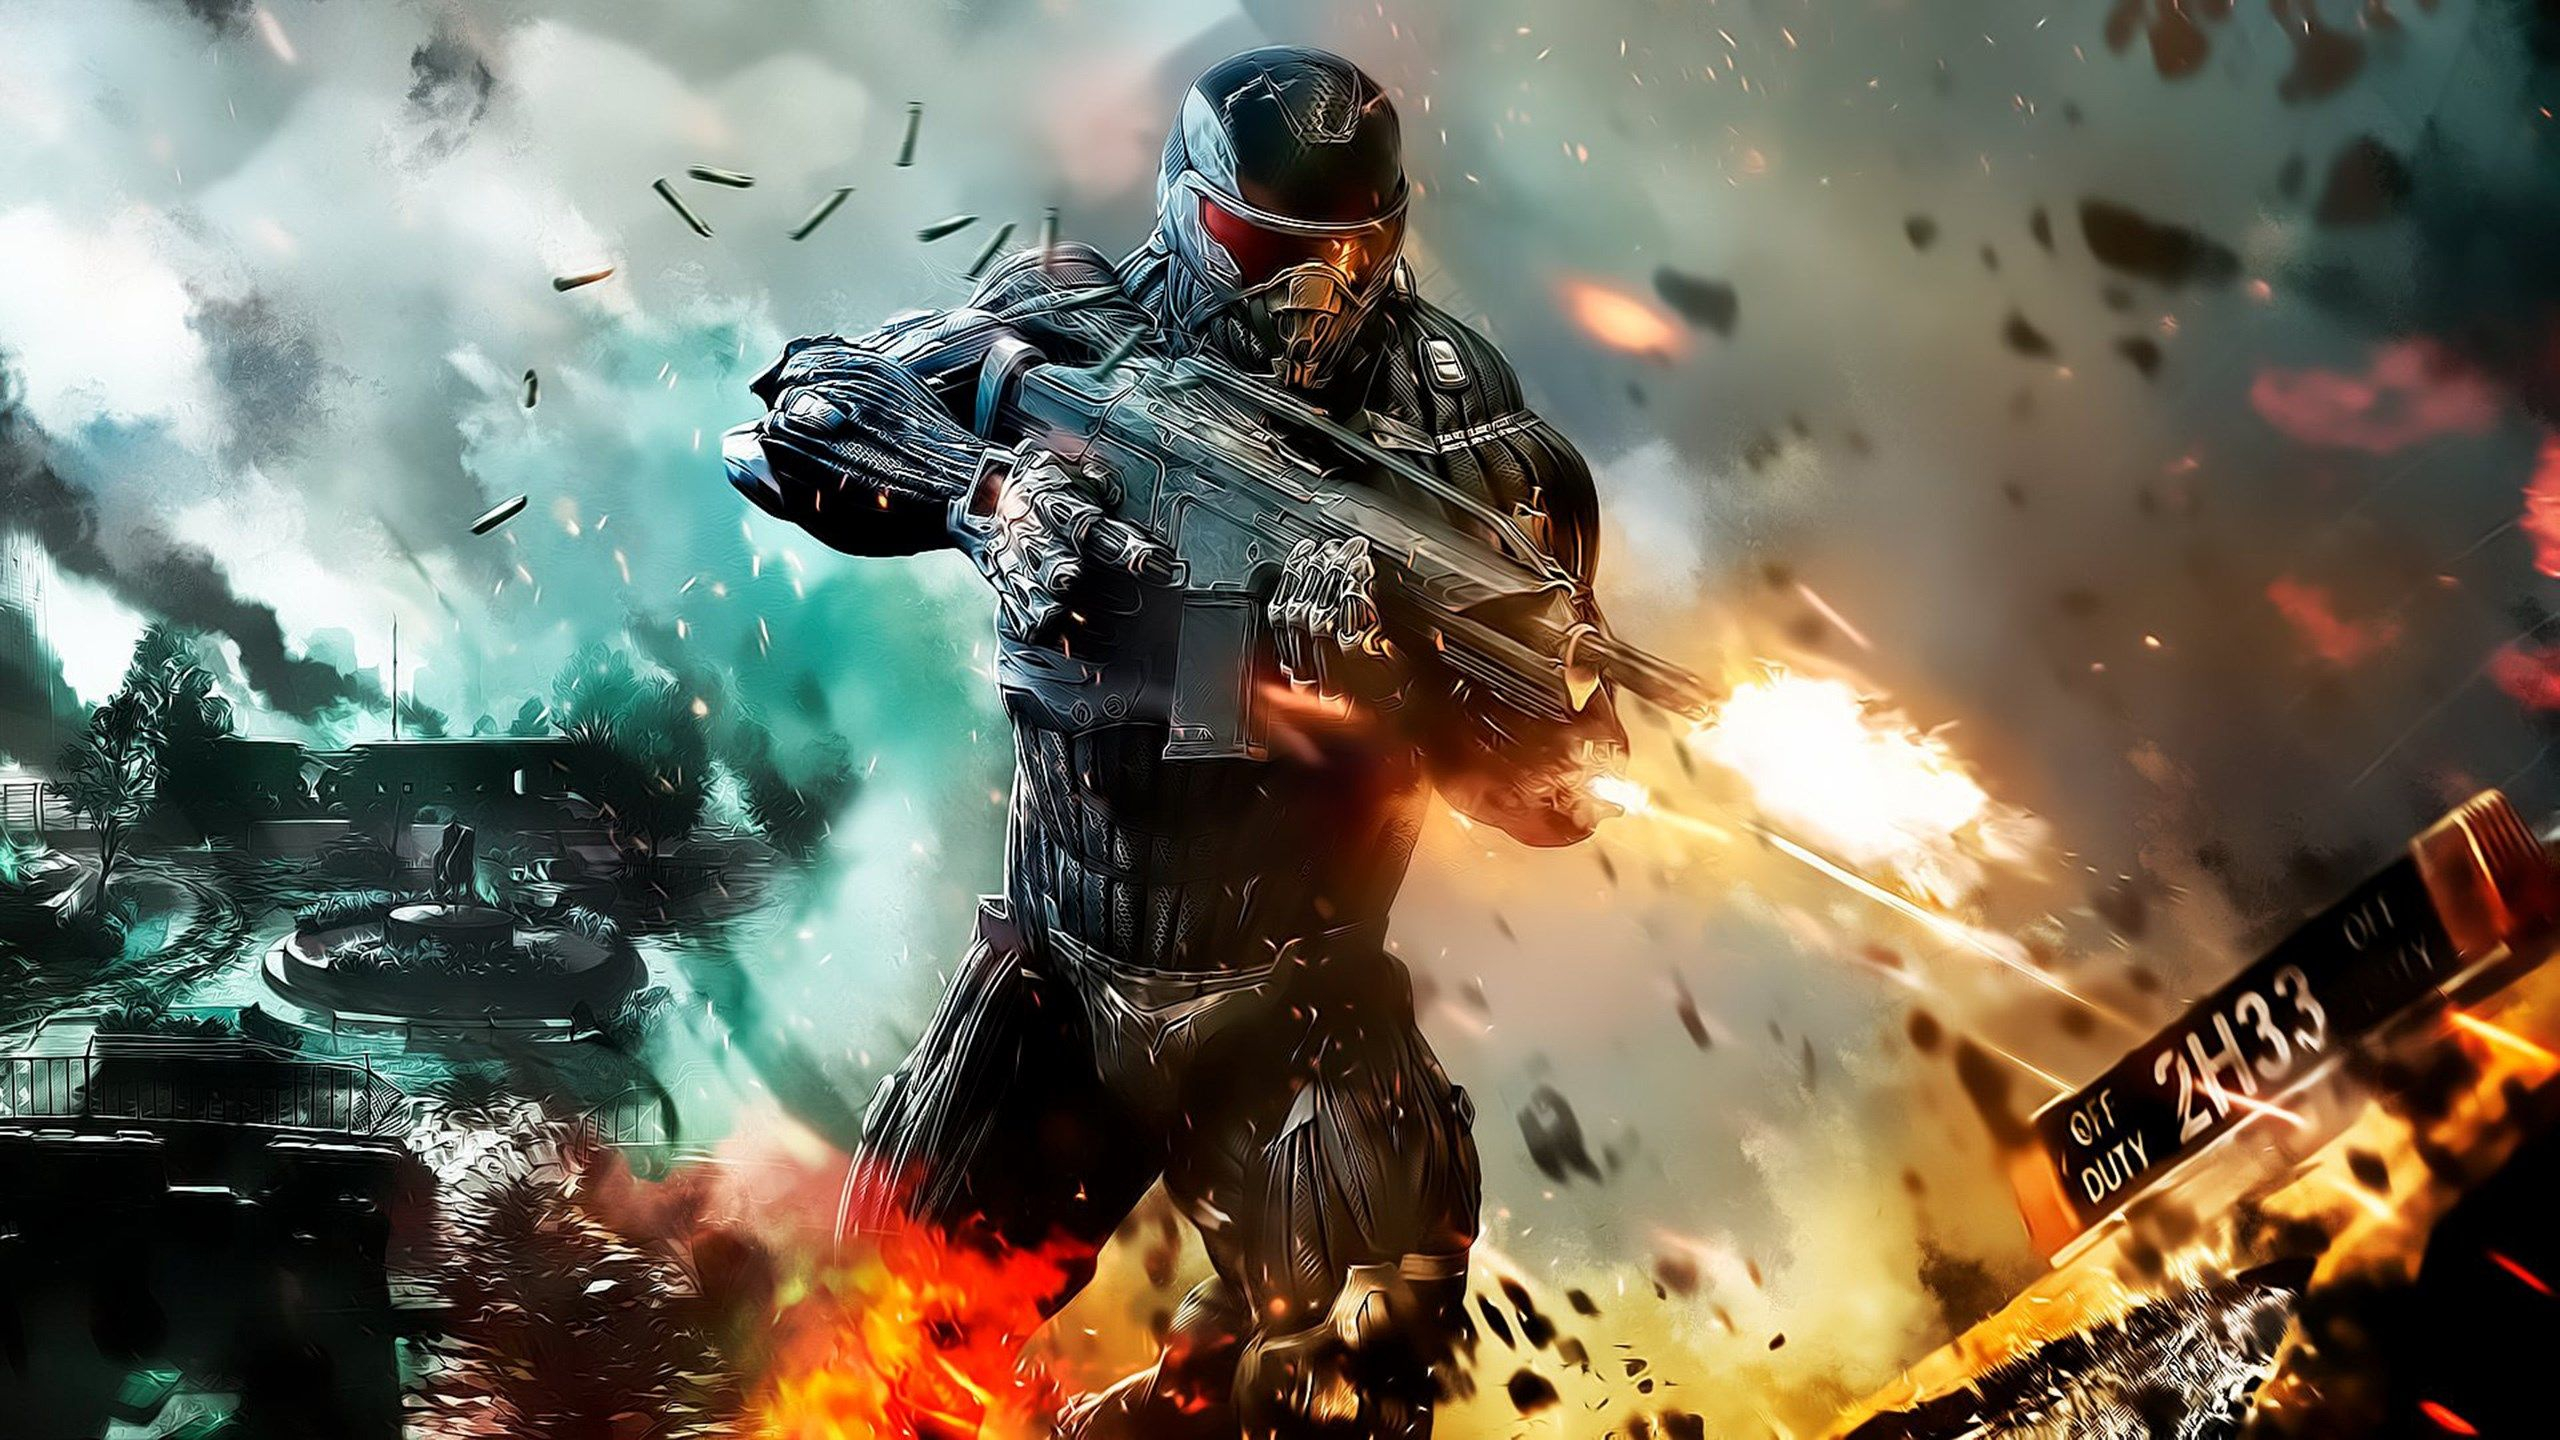 2560x1440 Free Desktop Pictures Crysis 2 Action Wallpaper